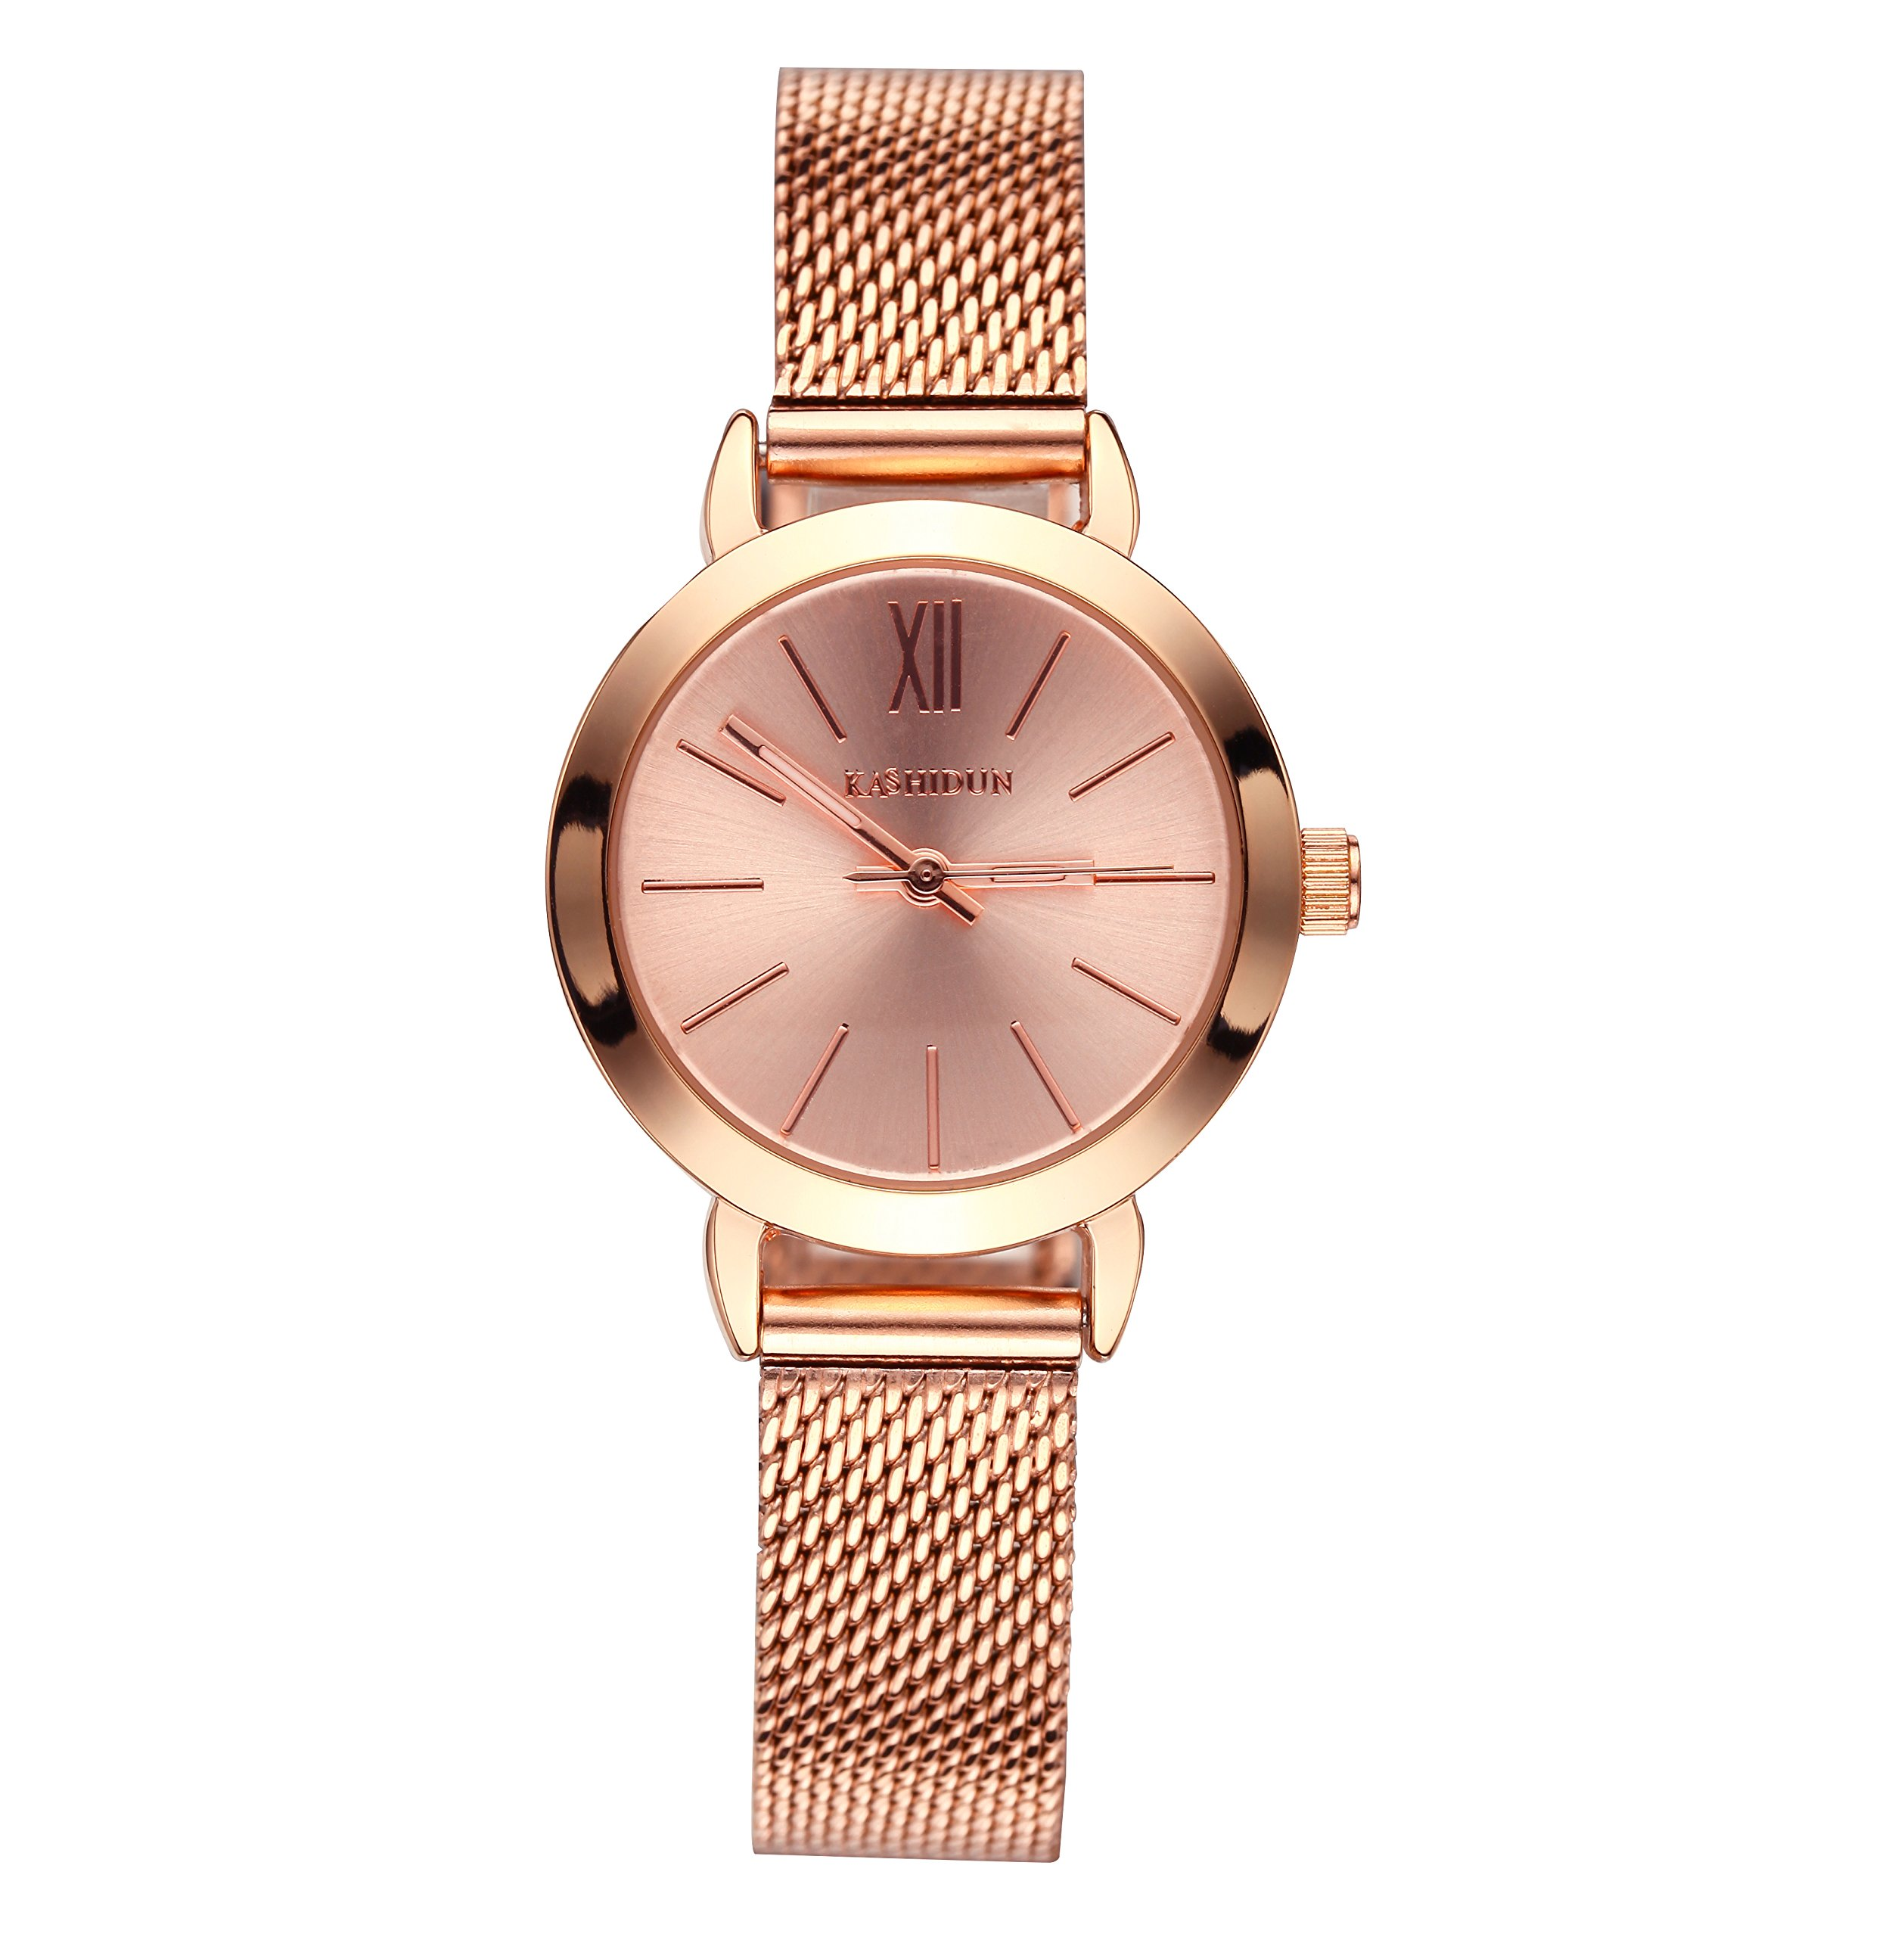 KASHIDUN Women's Quartz Watches Wrist Watches Rose Gold Small Dial Mesh Steel Milanese Bracelet.SD-MG